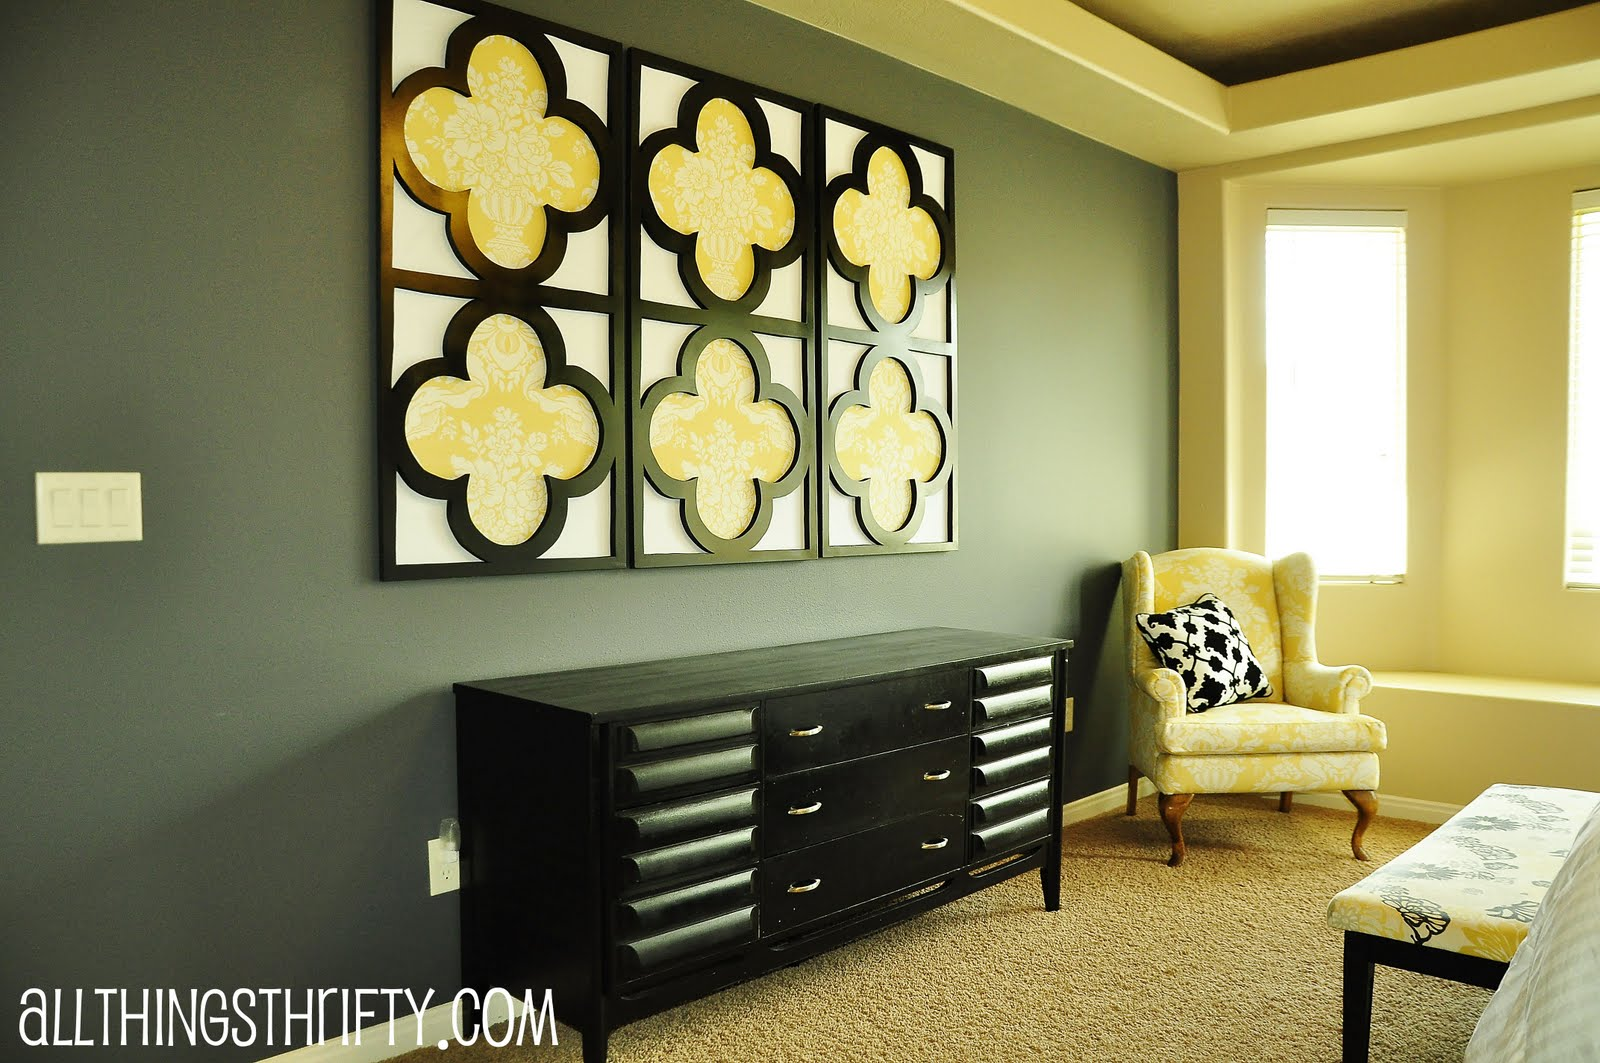 Tutorial: Quatrefoil DIY Decorative Wall Art